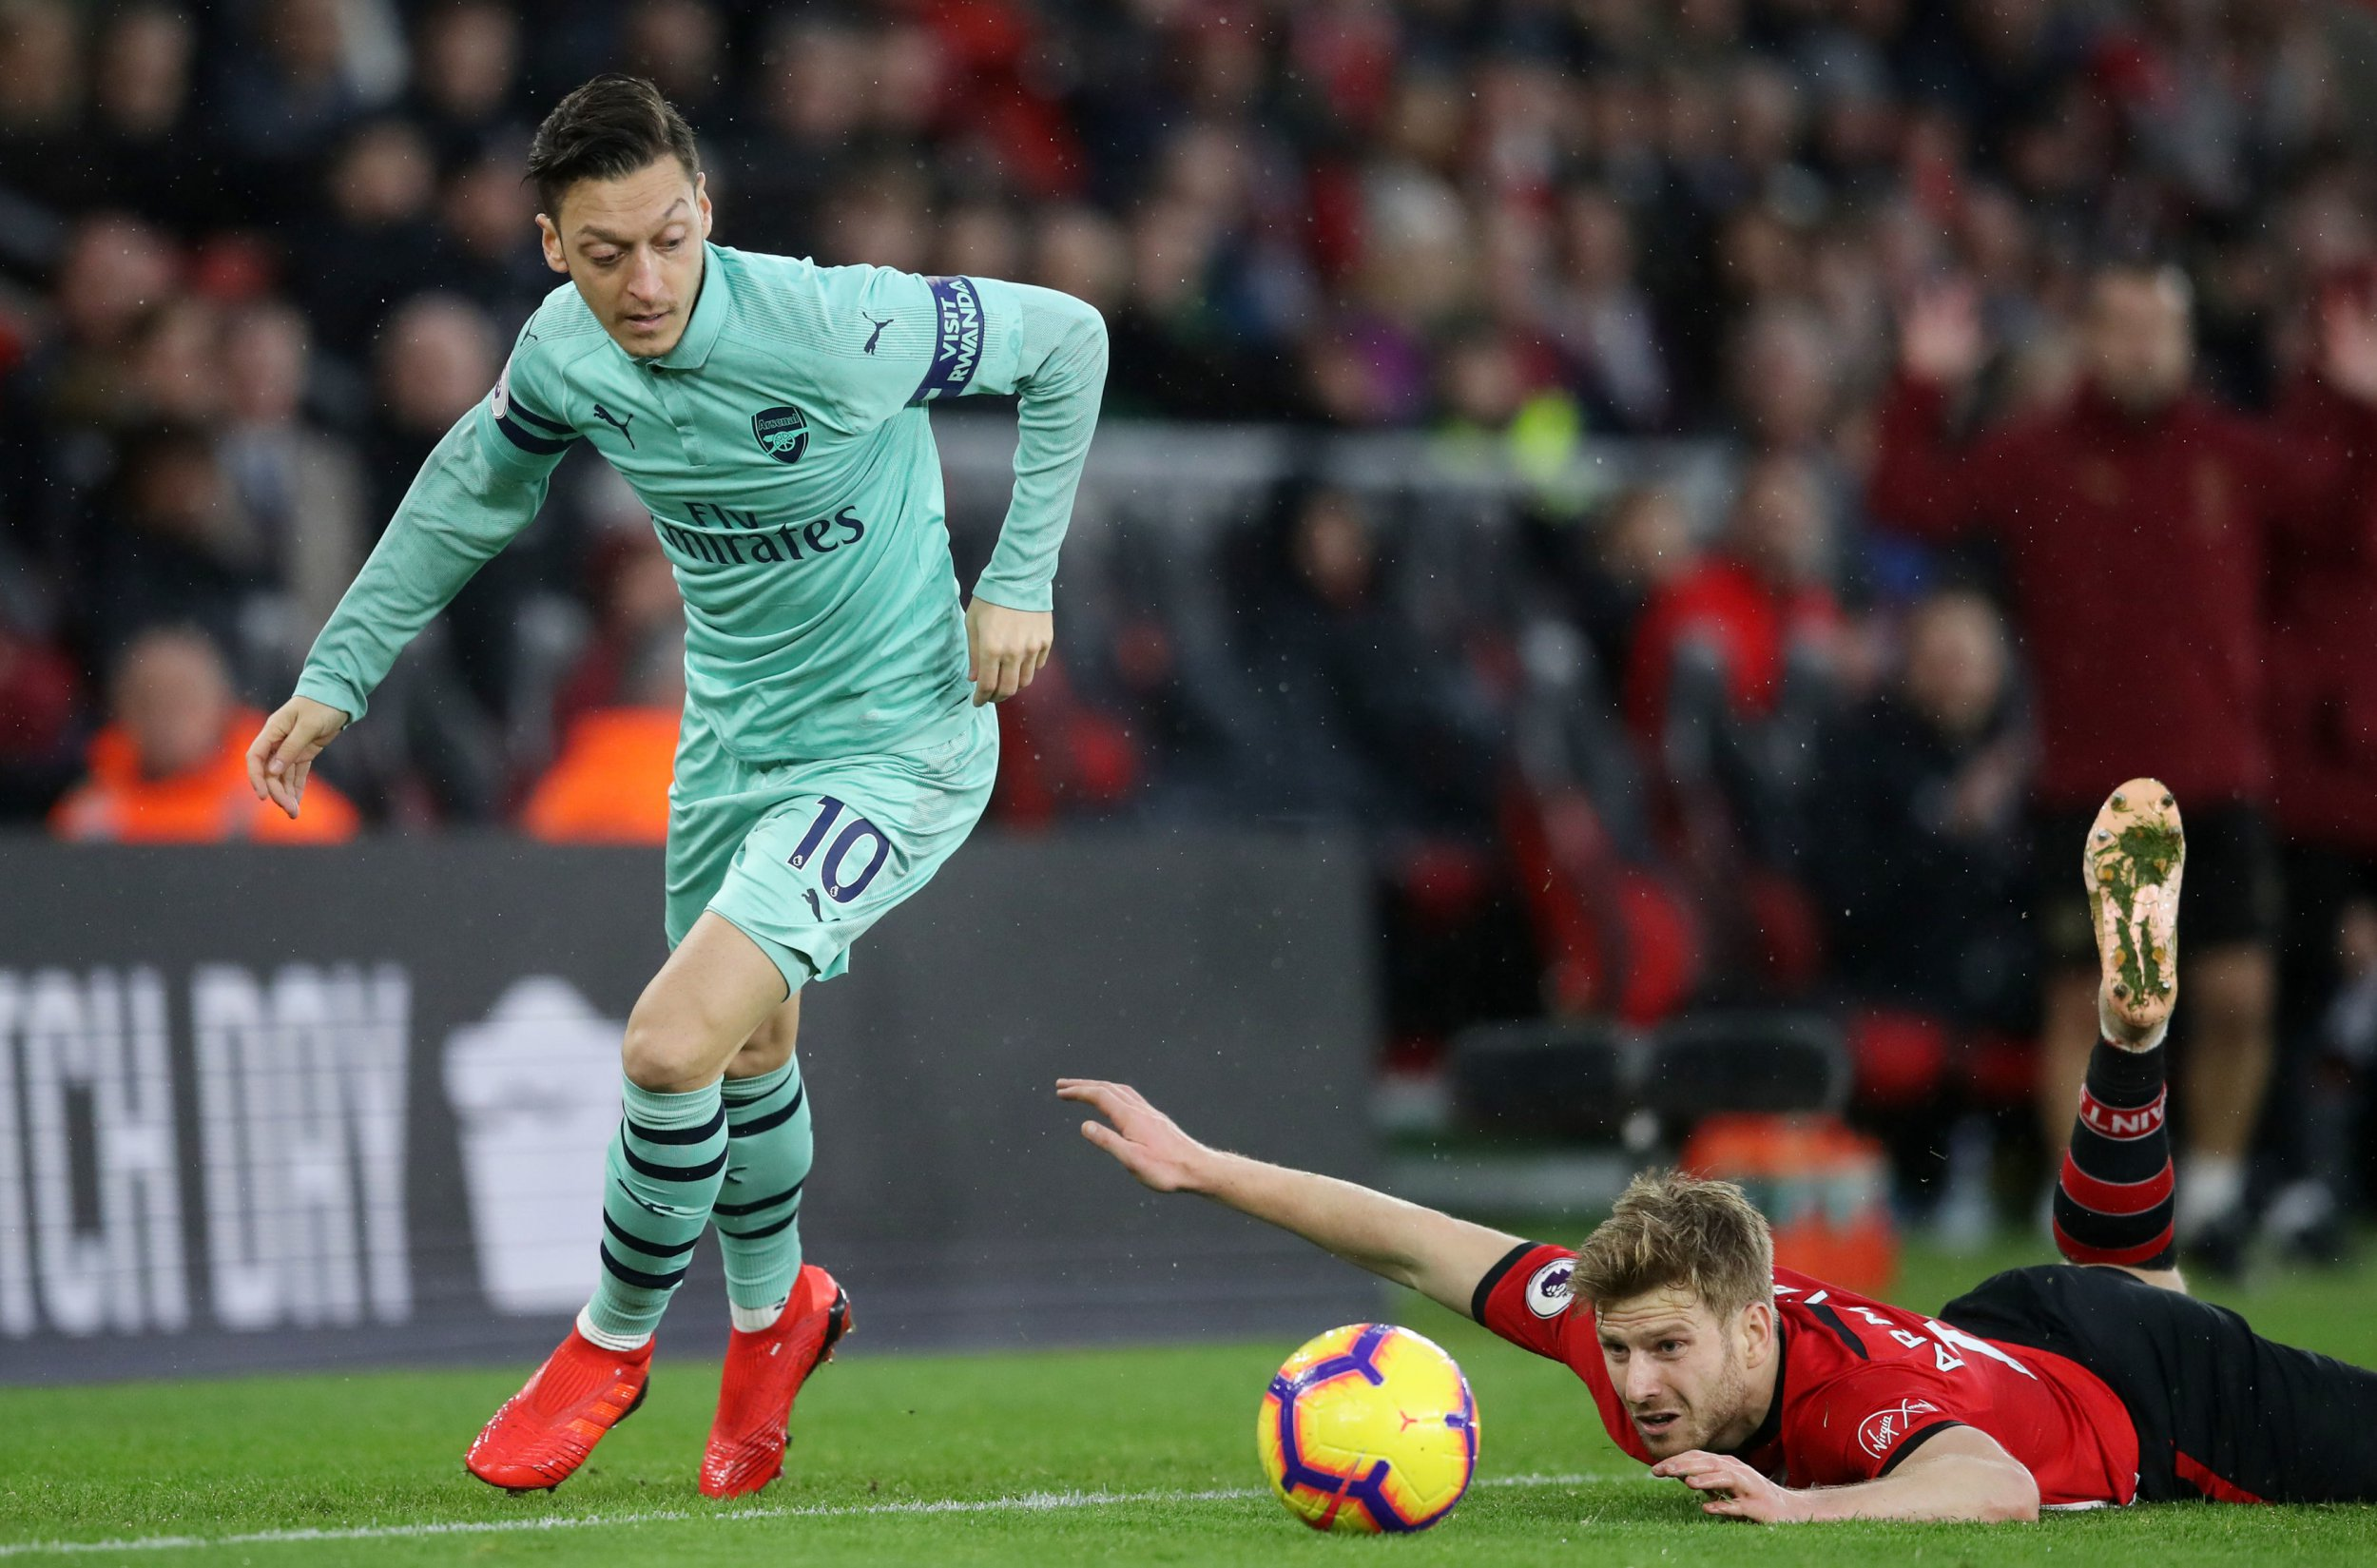 """Arsenal's Mesut Ozil jumps over a challenge from Southampton's Stuart Armstrong during the Premier League match at St Mary's Stadium, Southampton. PRESS ASSOCIATION Photo. Picture date: Sunday December 16, 2018. See PA story SOCCER Southampton. Photo credit should read: Adam Davy/PA Wire. RESTRICTIONS: EDITORIAL USE ONLY No use with unauthorised audio, video, data, fixture lists, club/league logos or """"live"""" services. Online in-match use limited to 120 images, no video emulation. No use in betting, games or single club/league/player publications"""